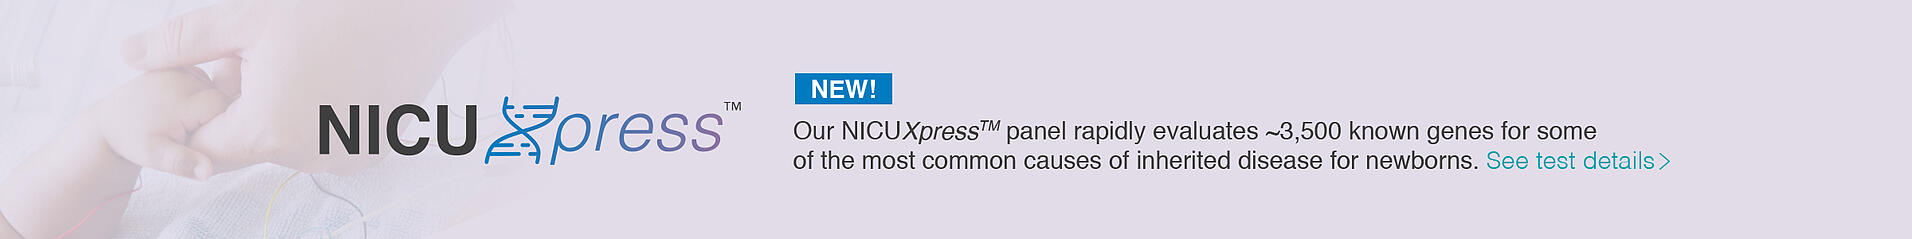 _NICUXpress_banner-2